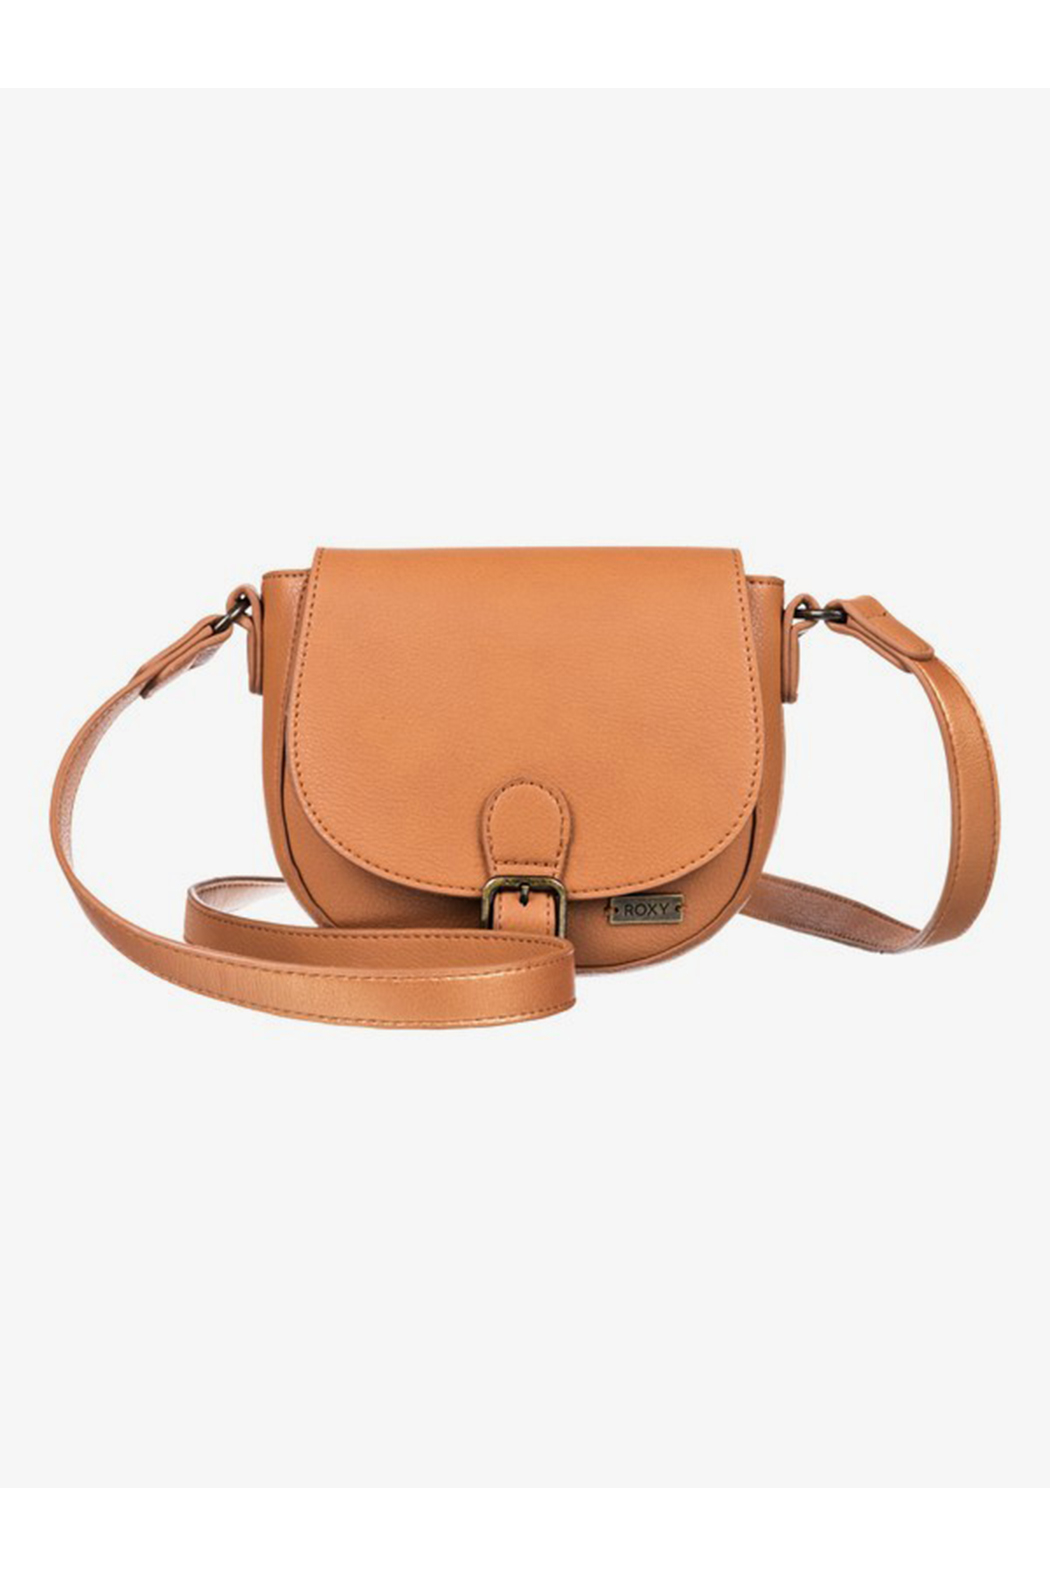 Roxy Vegan Brownie Small Faux Leather Shoulder Bag - Main Image